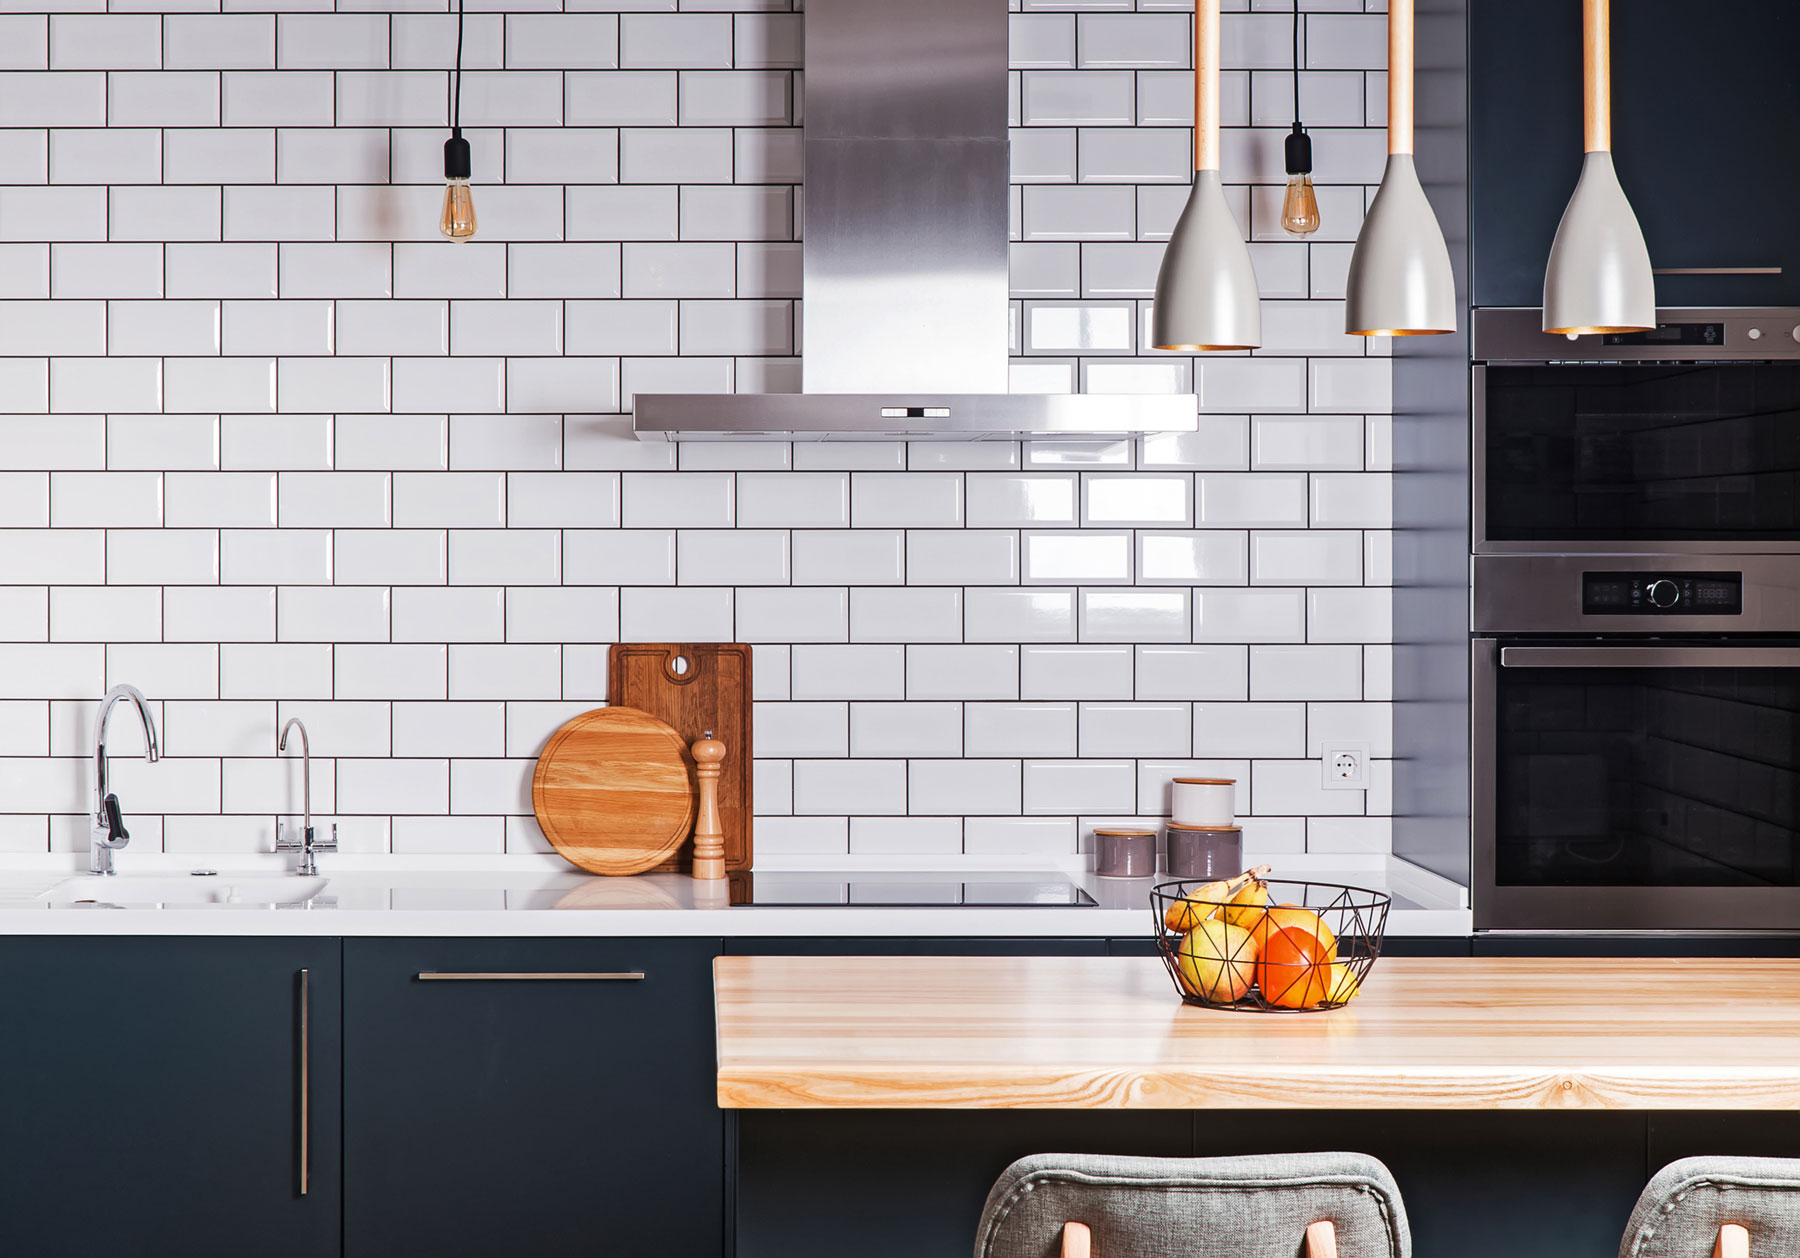 kitchen tile backsplash ideas you need to see right now real simple rh realsimple com kitchen ceramic tile backsplash ideas kitchen ceramic tile backsplash ideas